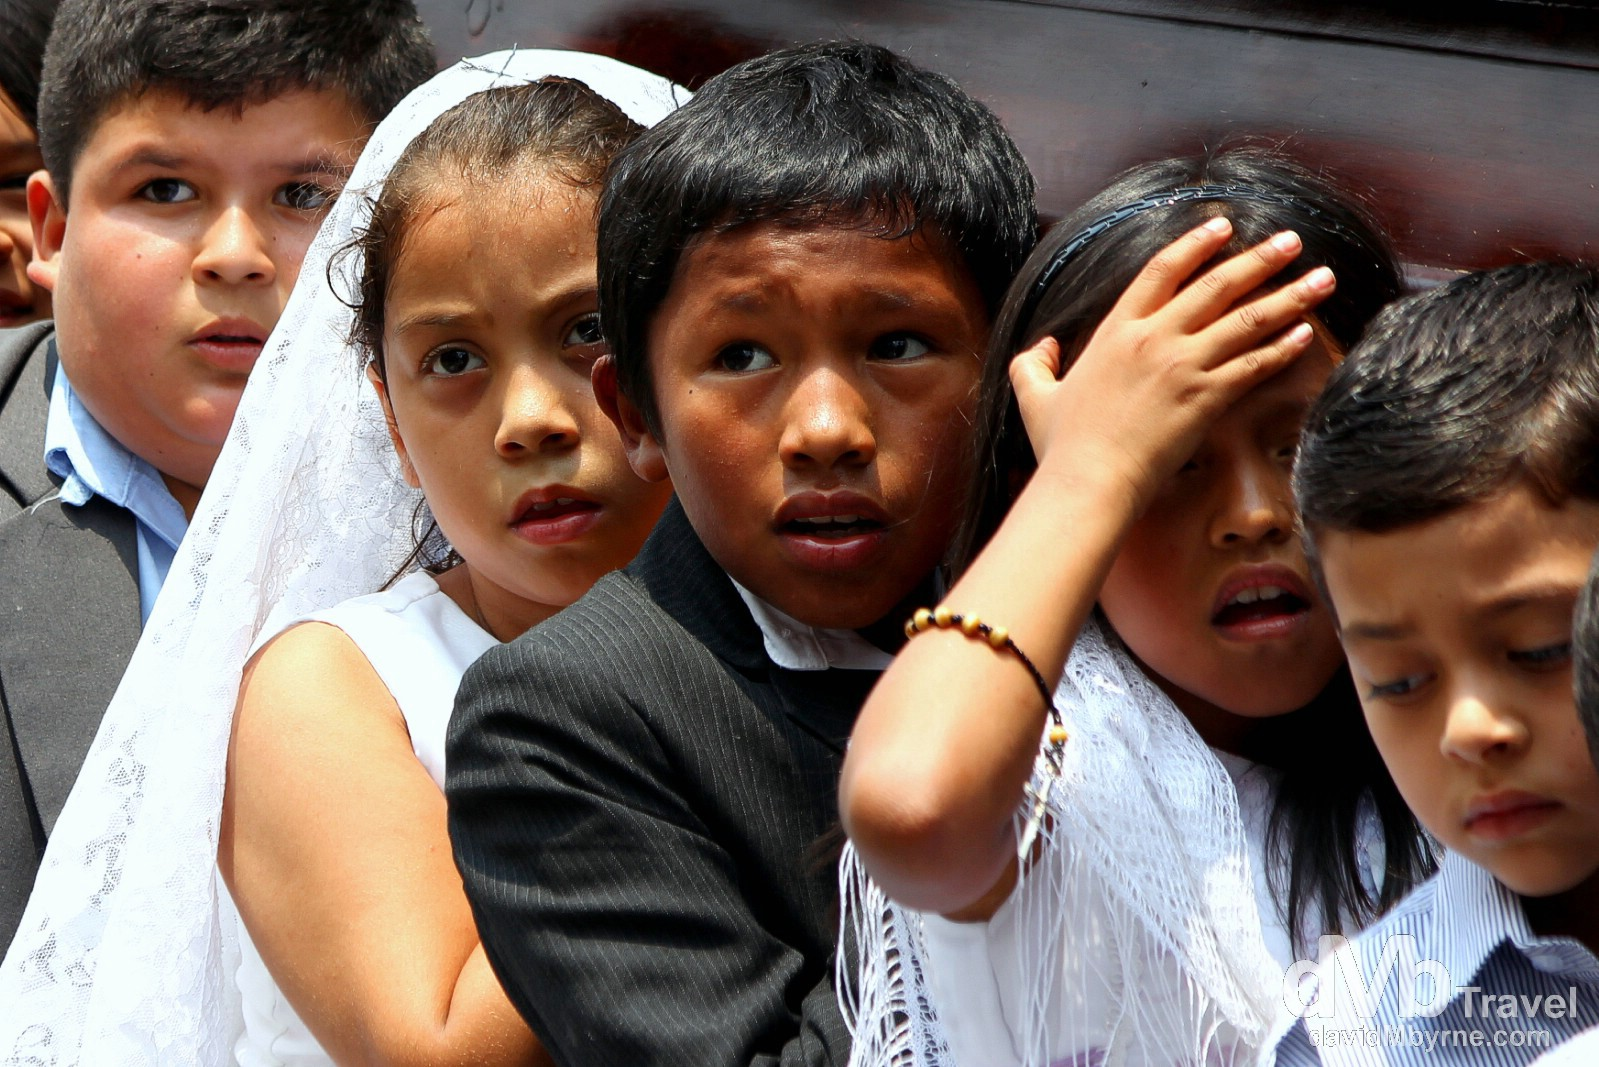 Children carrying a coffin as part of a religious ceremony in Parque Central, Antigua, Guatemala. May 19th 2013.